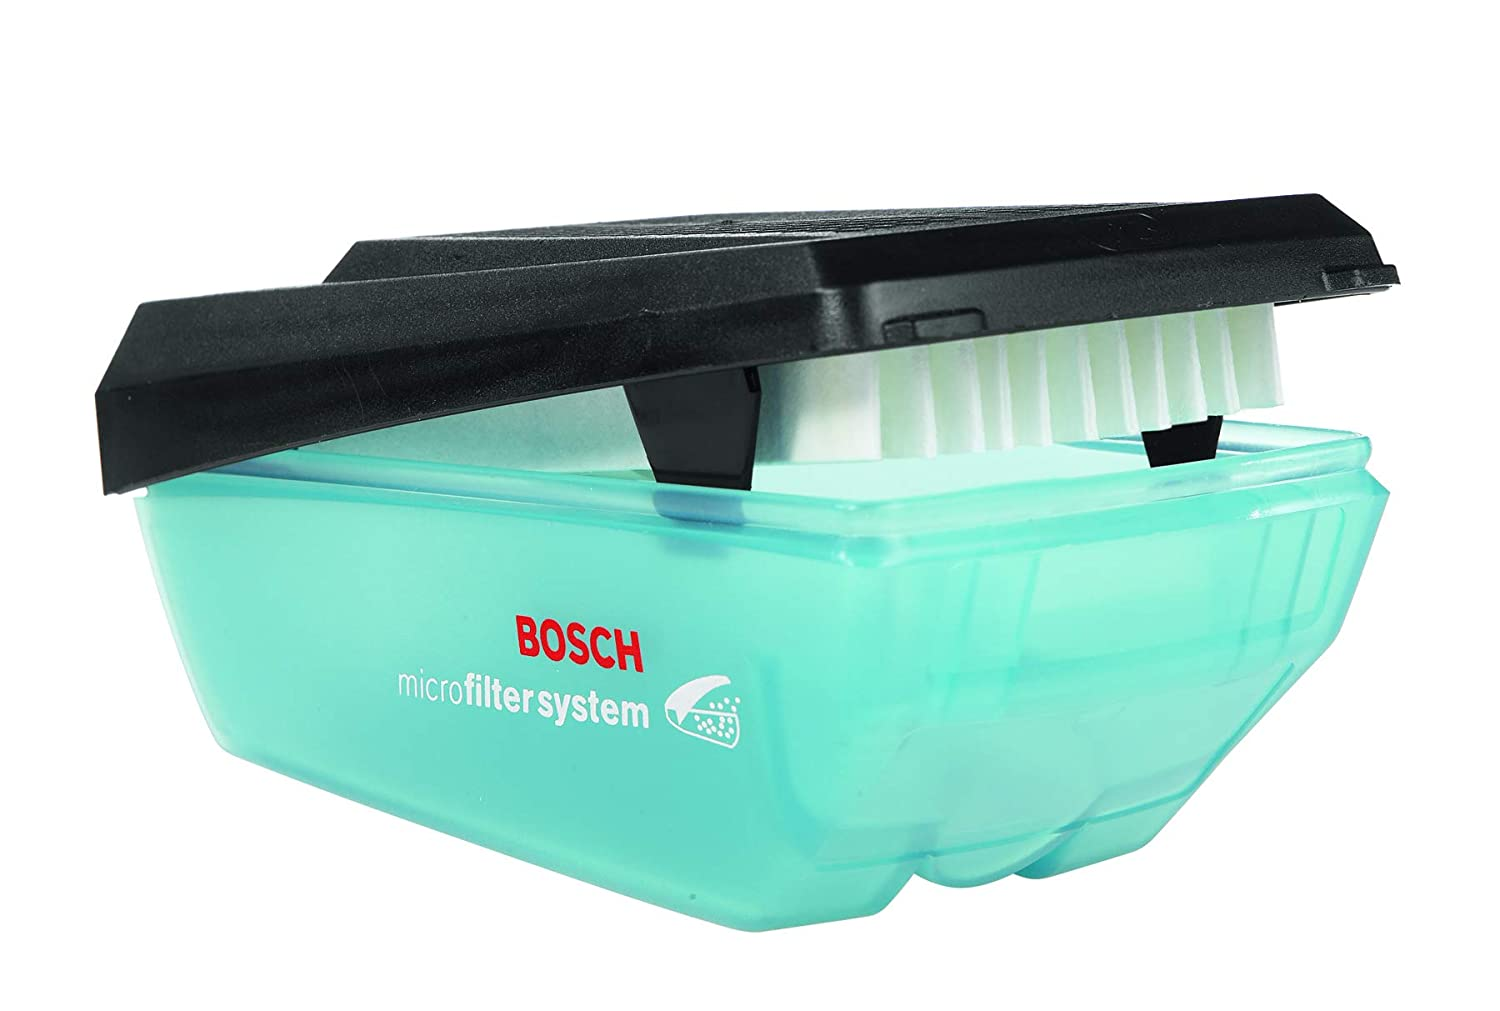 Bosch ROS20VSC featured image 10